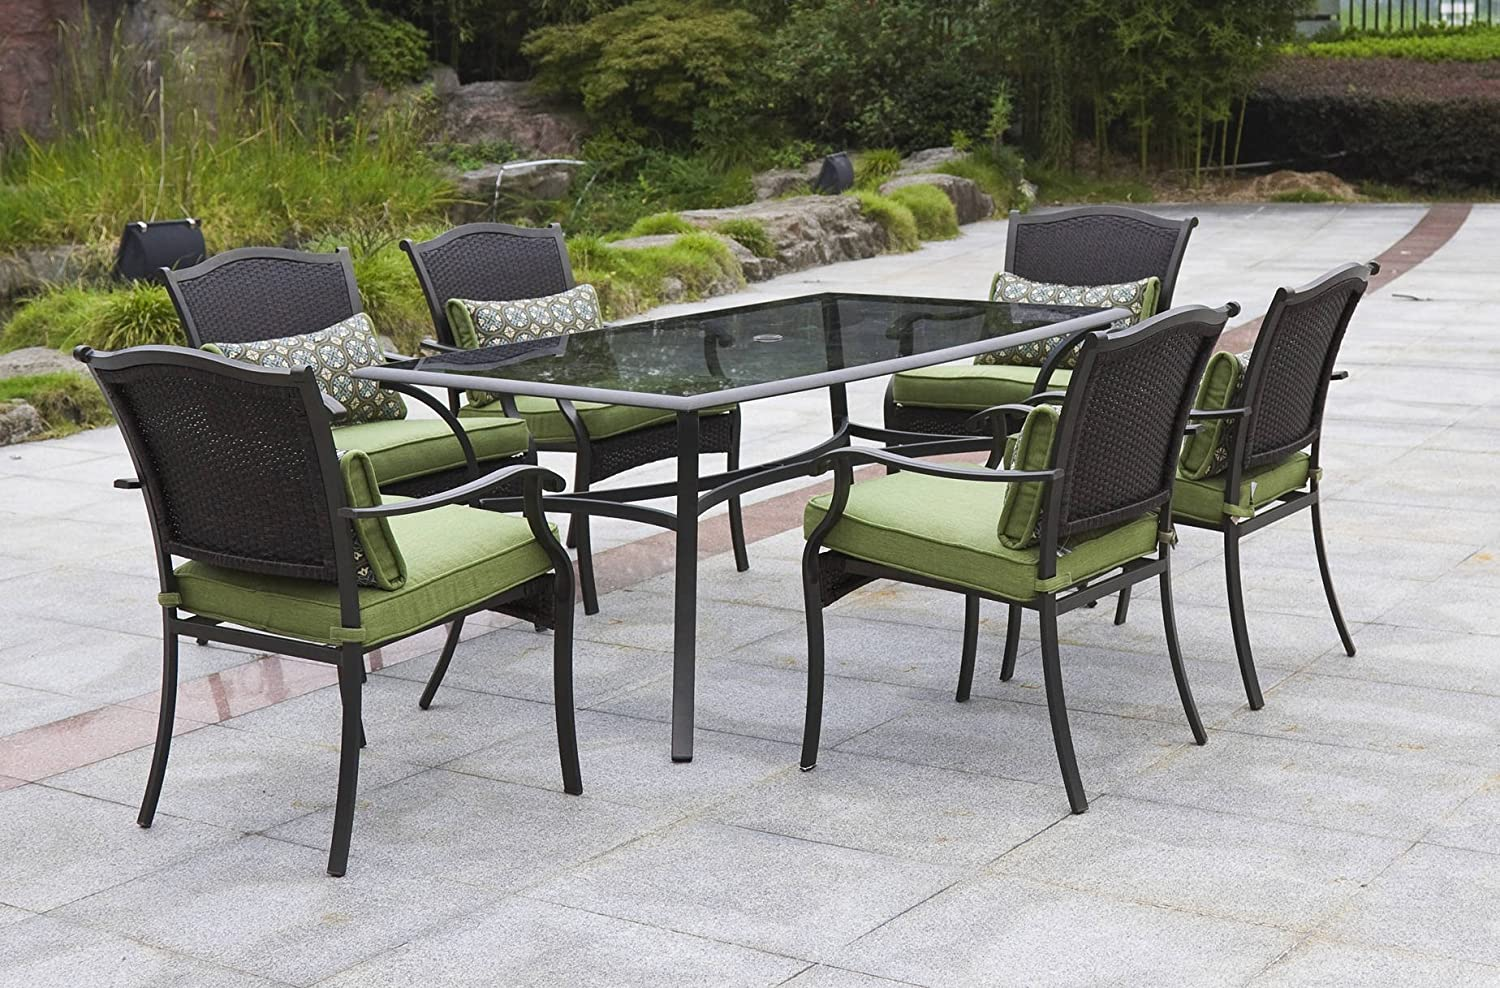 wicker weather collection luxury furniture set all aerin dining patio person